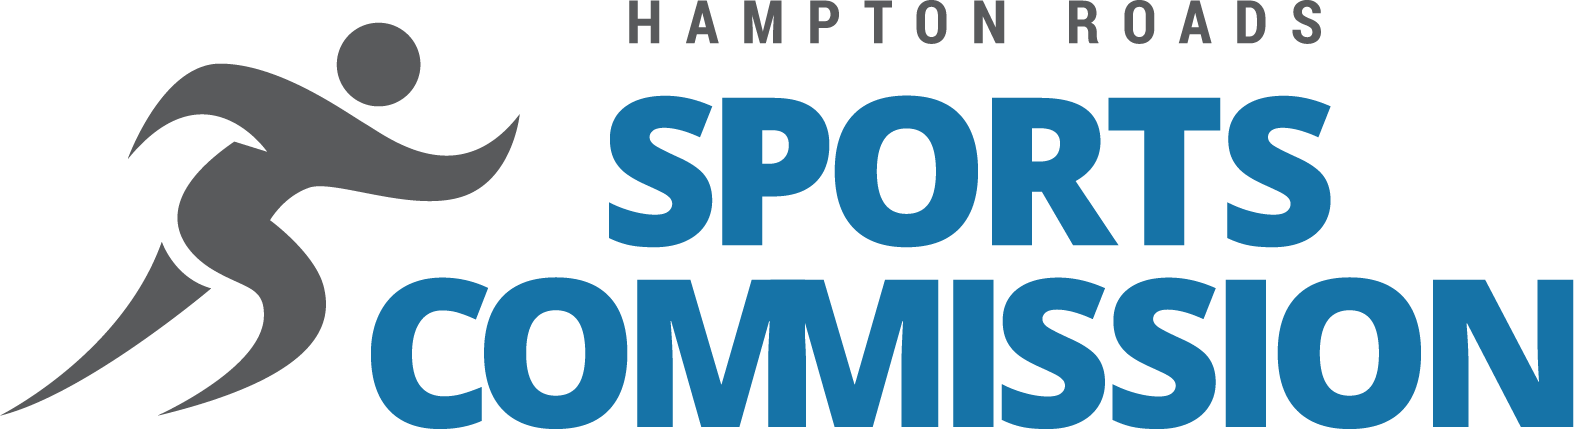 Hampton Roads Sports Commission Announces New Board Members For 2019